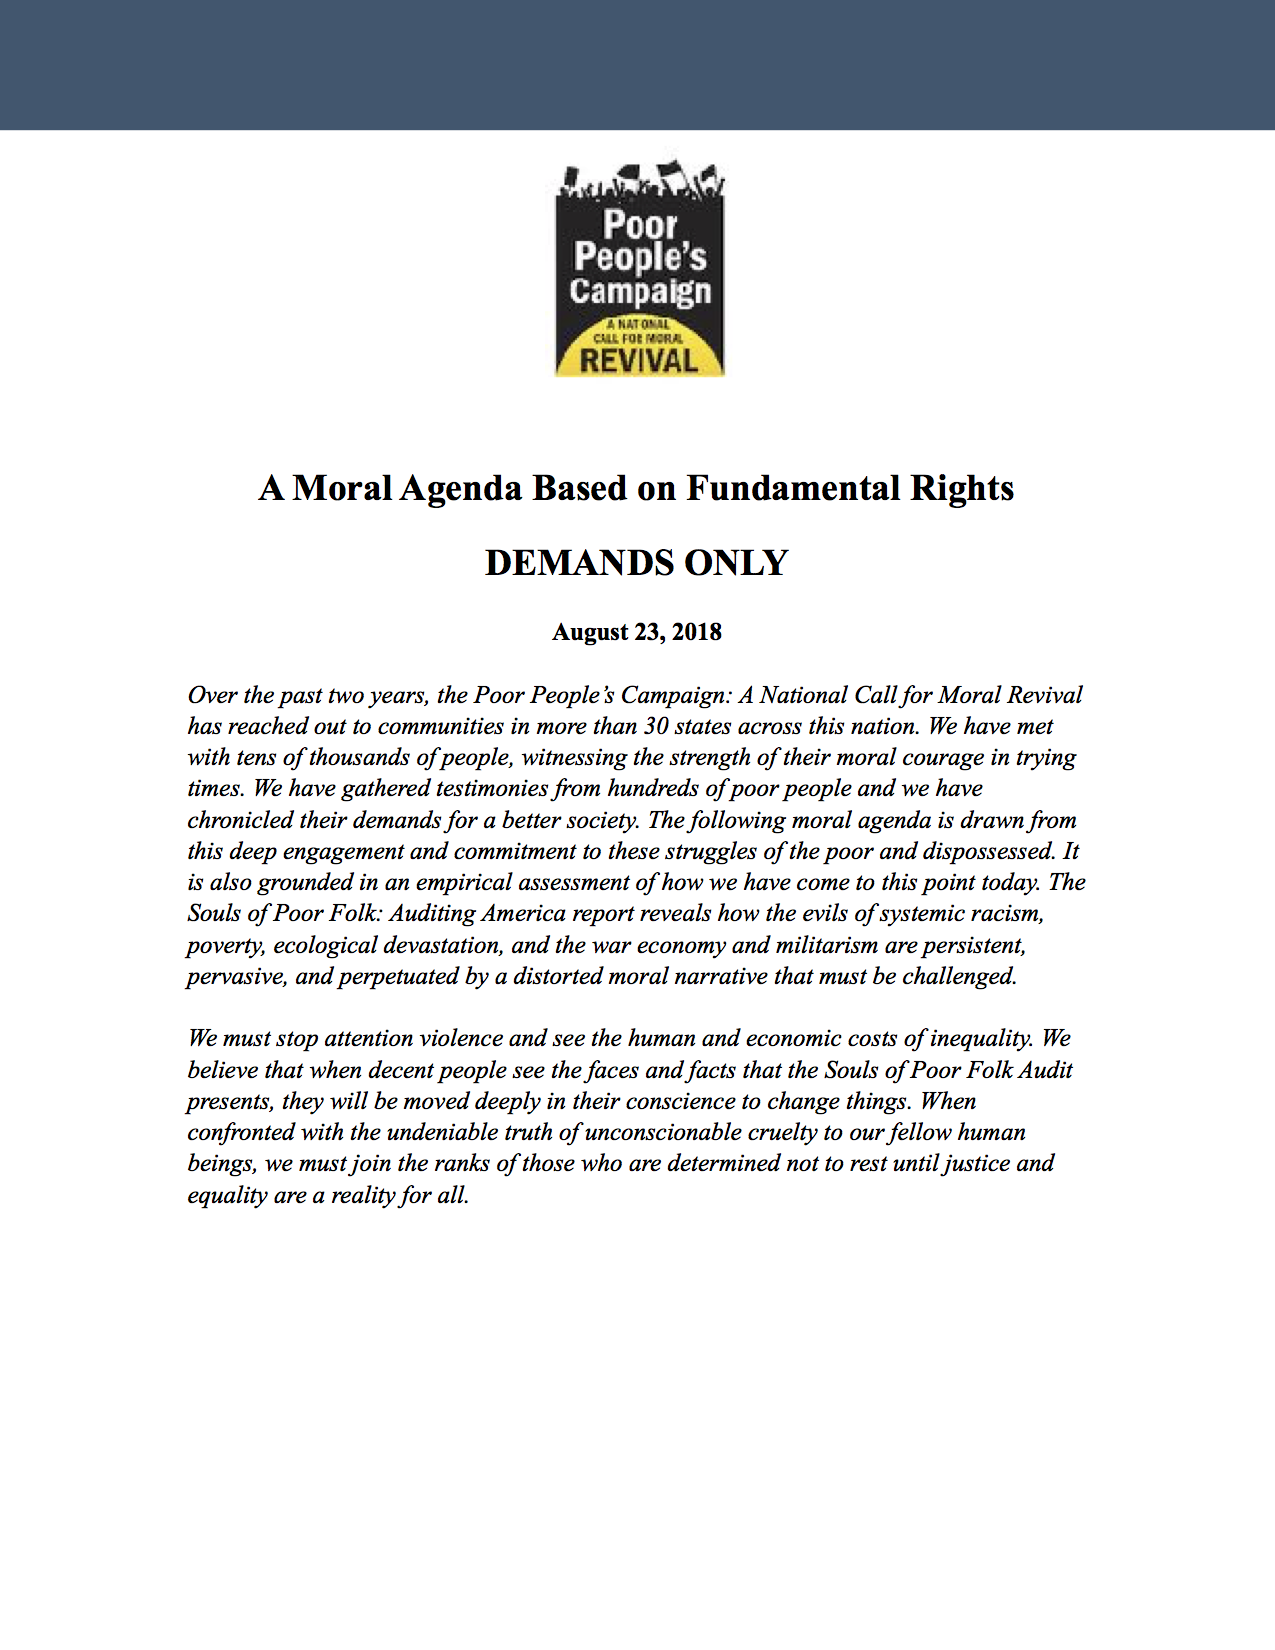 Moral Agenda Demands - The demands of the Poor People's Campaign: A National Call for Moral Revival are drawn from a deep engagement and commitment to the struggles of the poor and dispossessed.